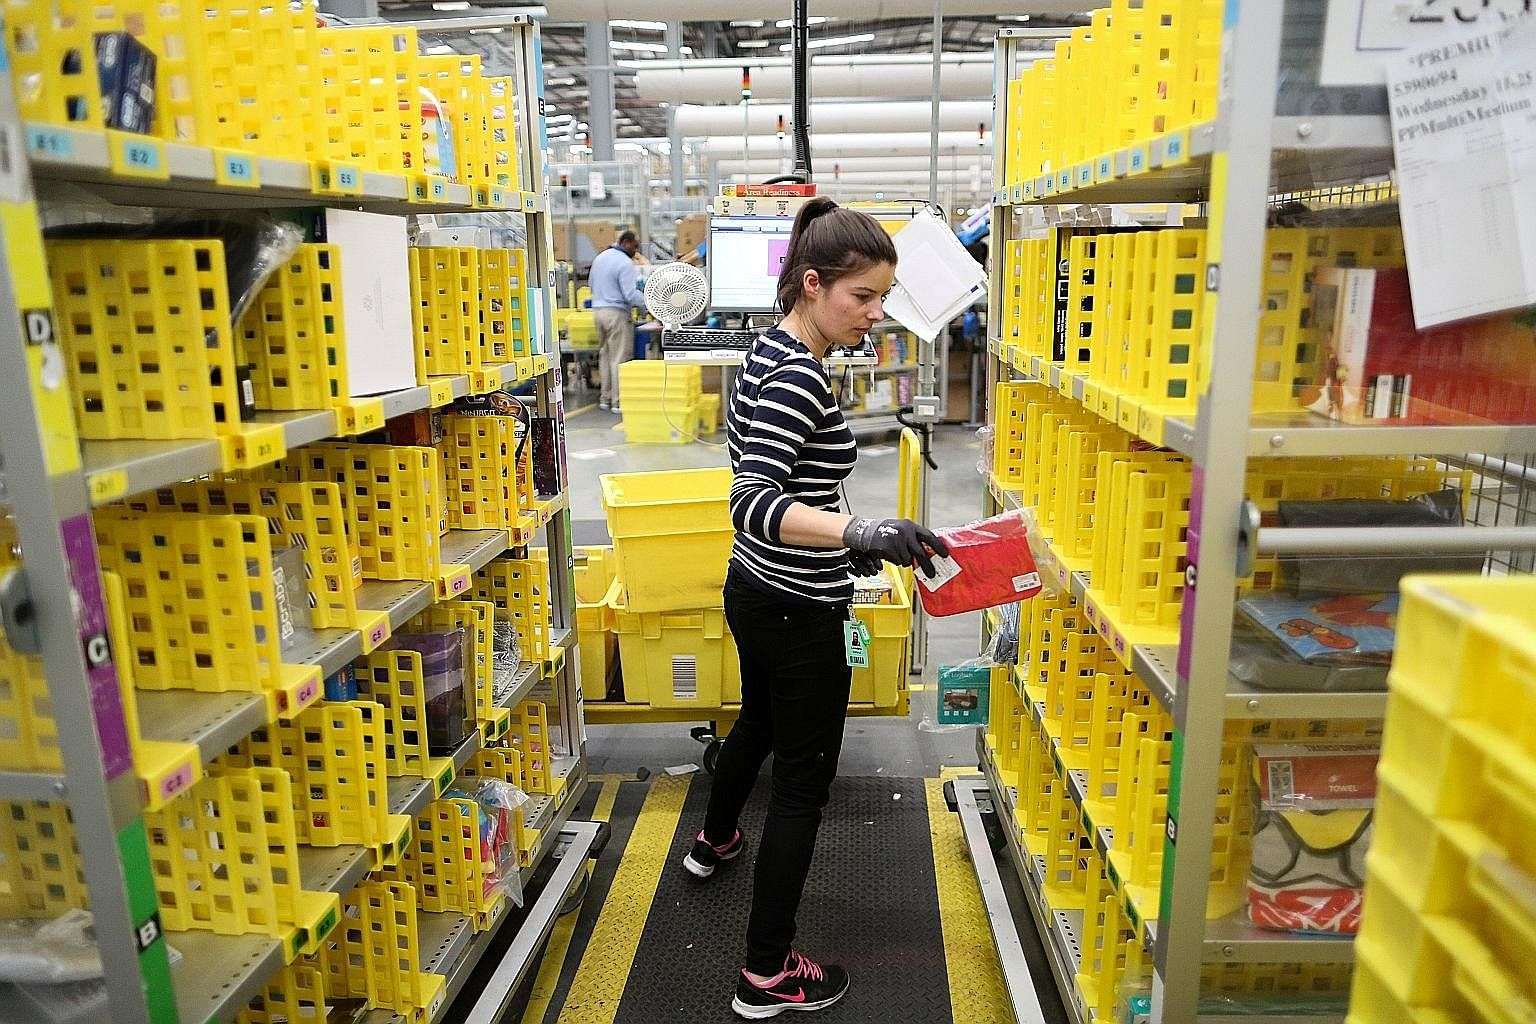 Amazon's fulfilment centre in Hemel Hempstead, Britain. Amazon has acquired formidable entrenched advantages, from the data about customers and the suppliers who sell through it, to the bargaining power it has over delivery firms, to the vast network